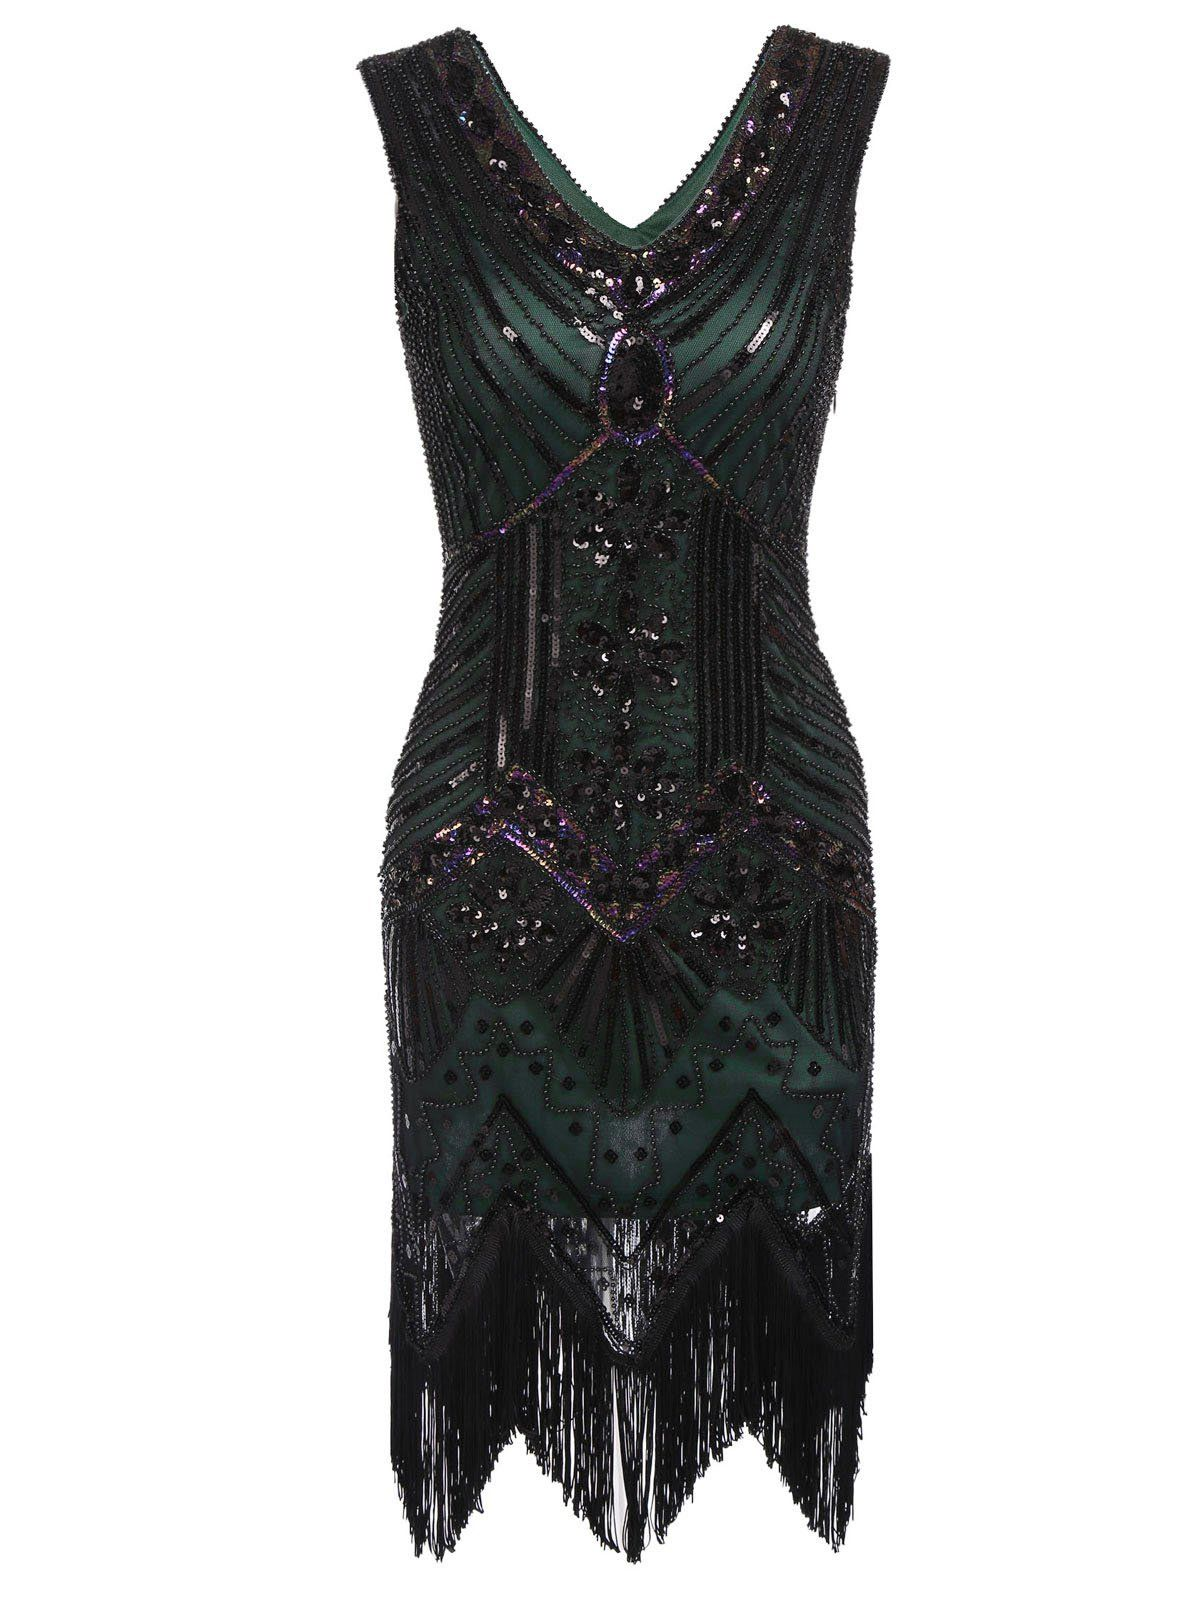 7092ee037d1 1920s Sequined Flapper Dress – Retro Stage - Chic Vintage Dresses and  Accessories